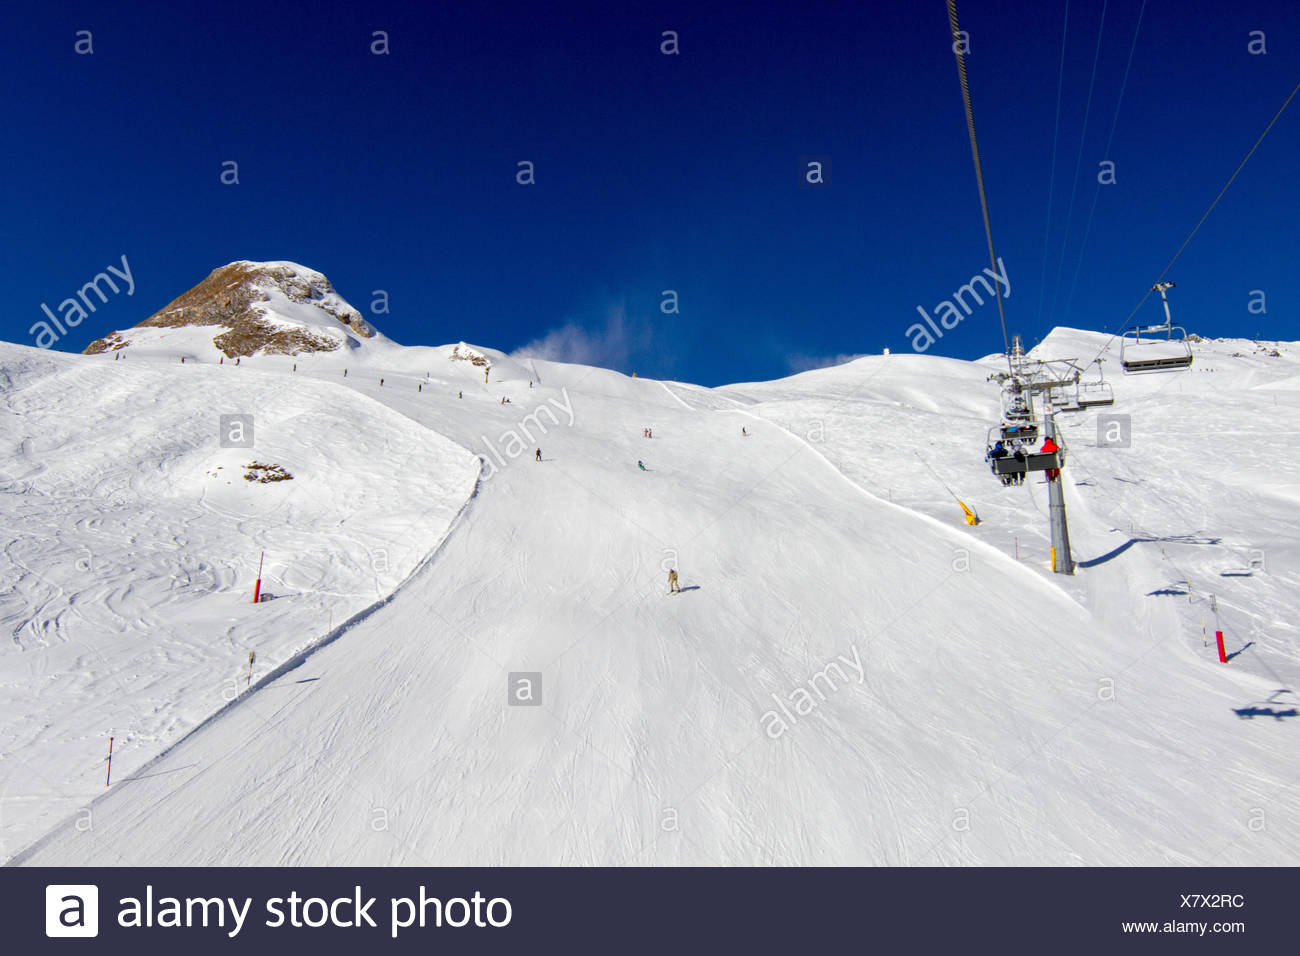 Ski slope with chairlift and clear blue sky. - Stock Image